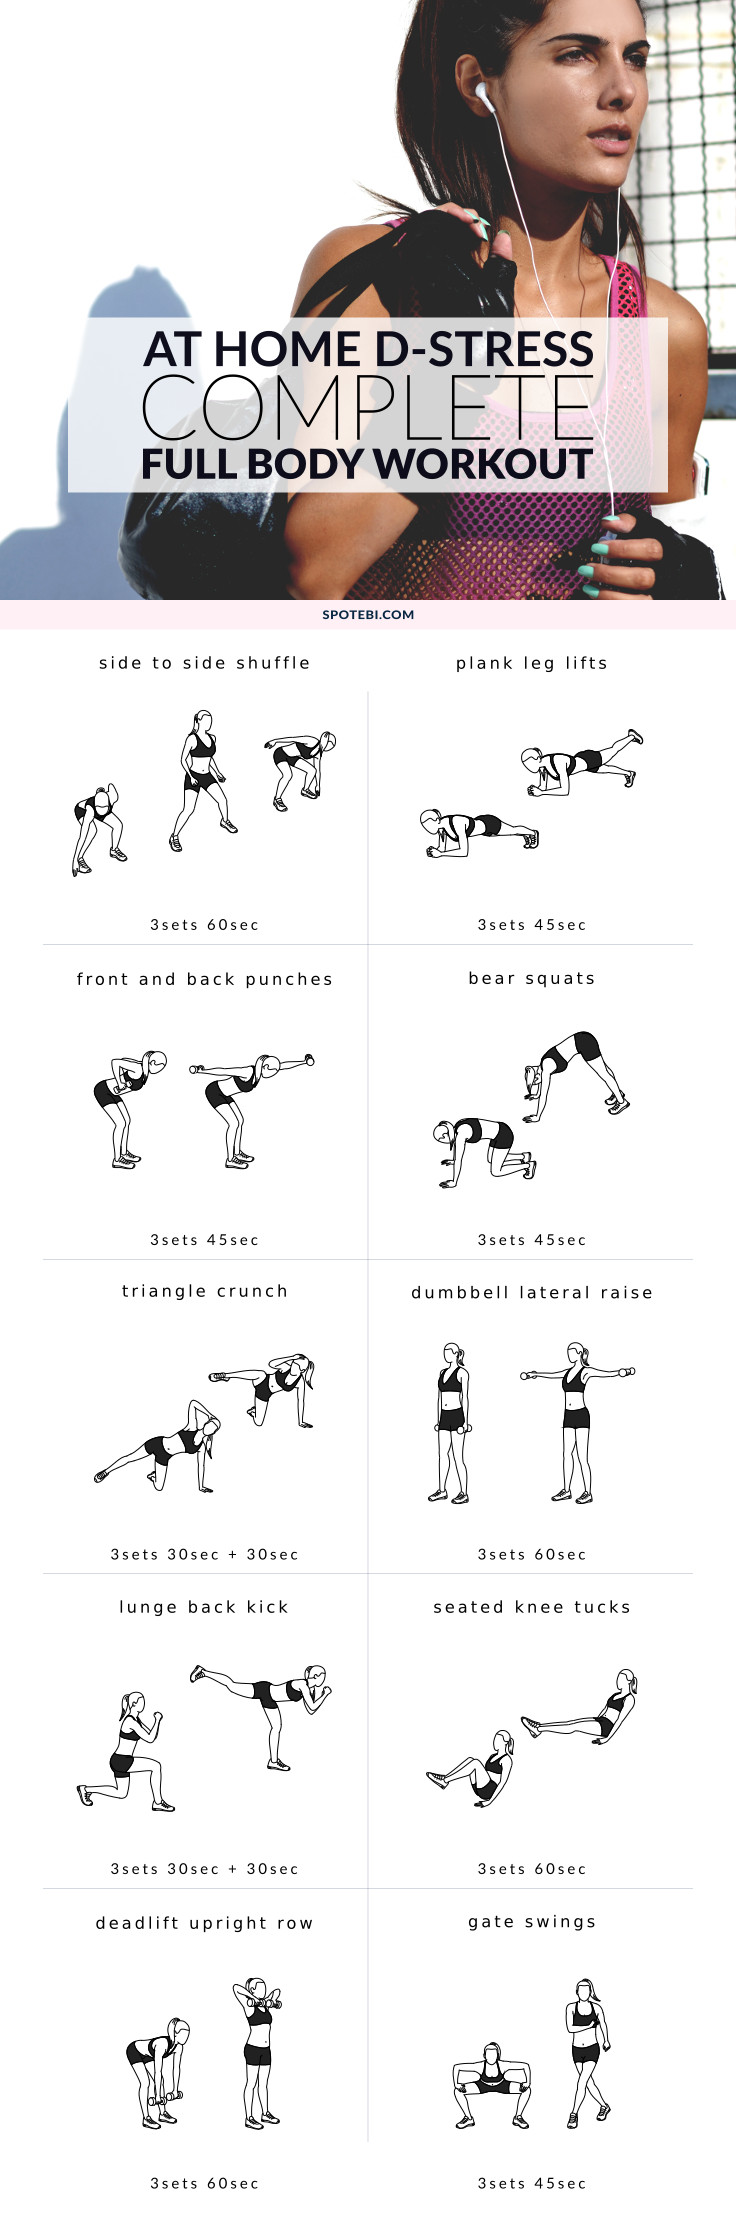 Tone your whole body and burn excess fat with this complete full body workout you can do at home. Grab a set of dumbbells, get in the zone and blast those holiday calories in just 29 minutes! https://www.spotebi.com/workout-routines/complete-full-body-workout/